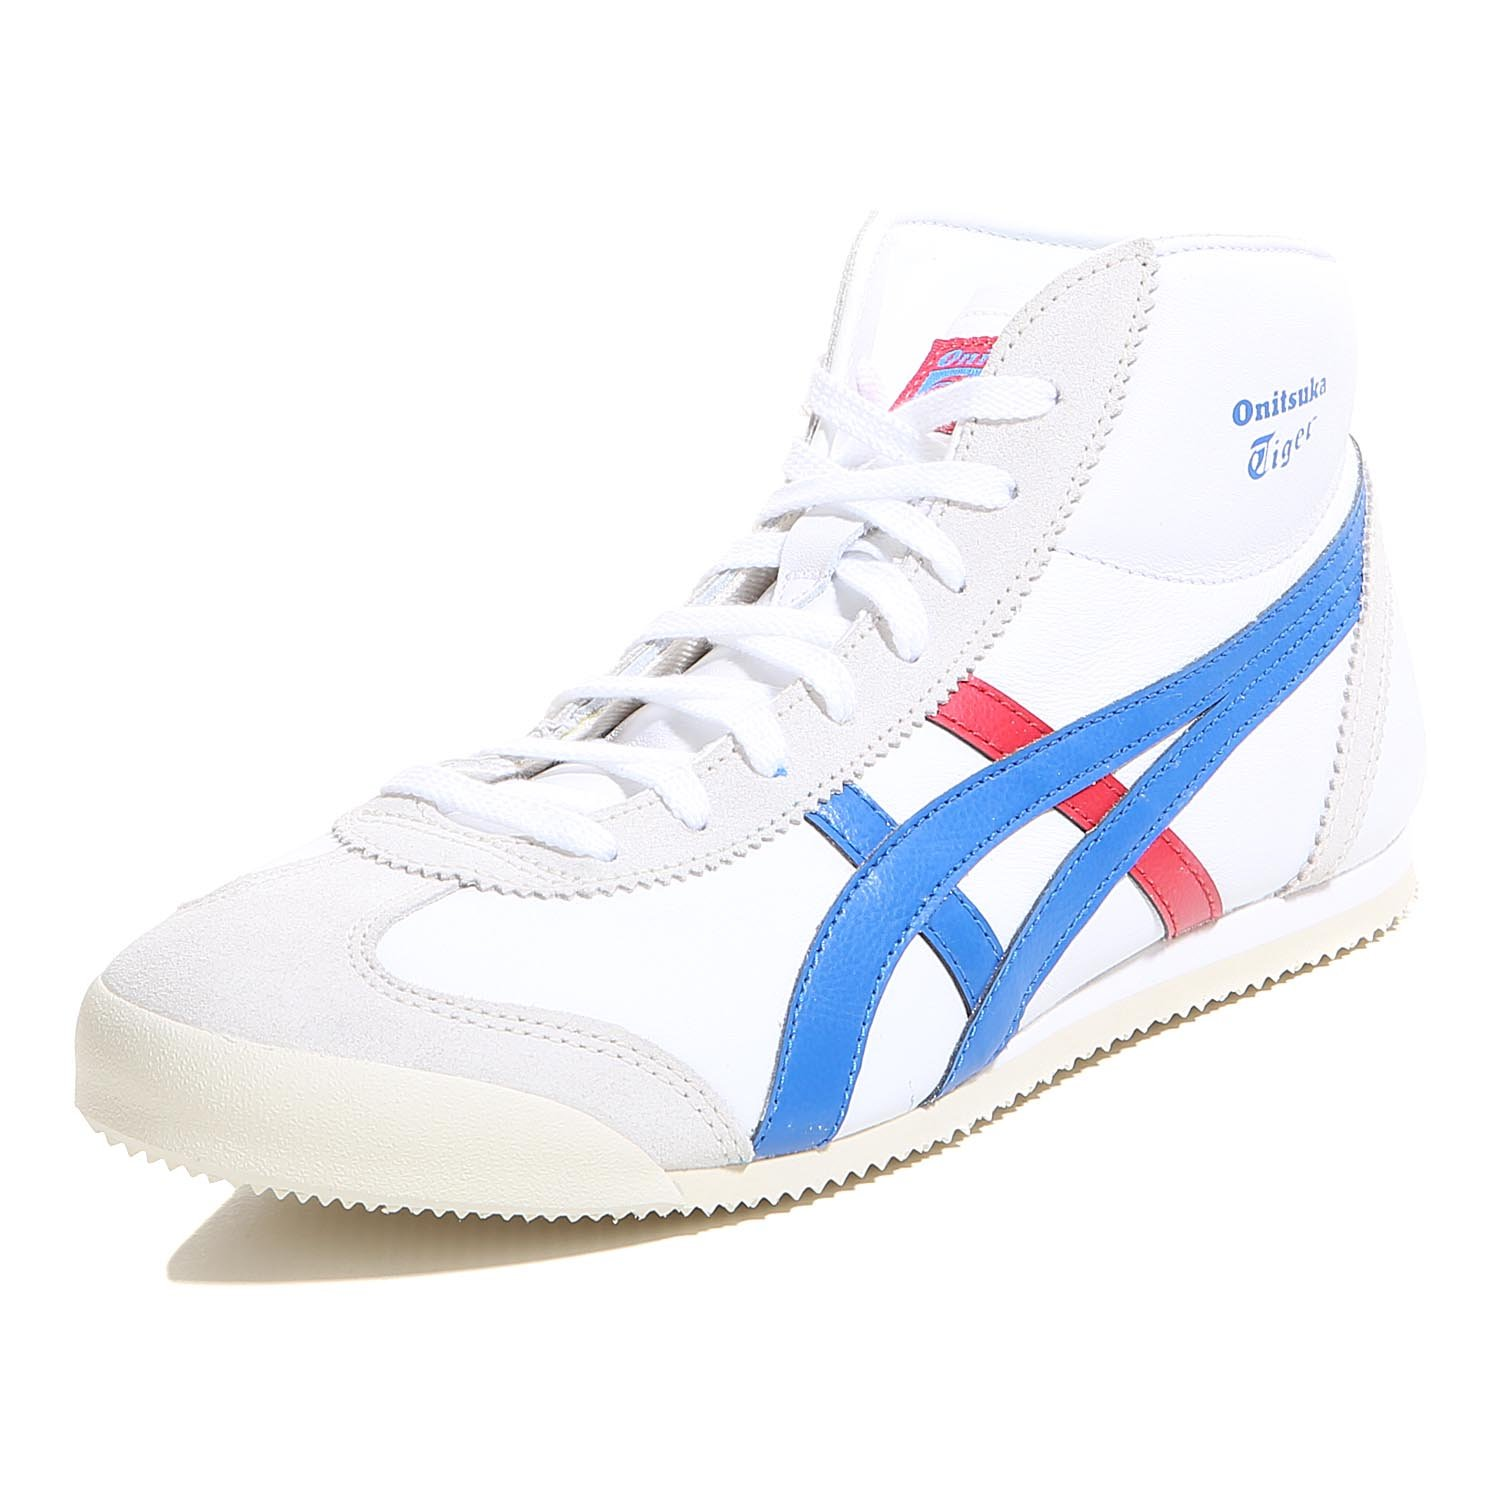 finest selection ecb3f 285f1 Onitsuka Tiger by Asics Unisex Adults' Trainers